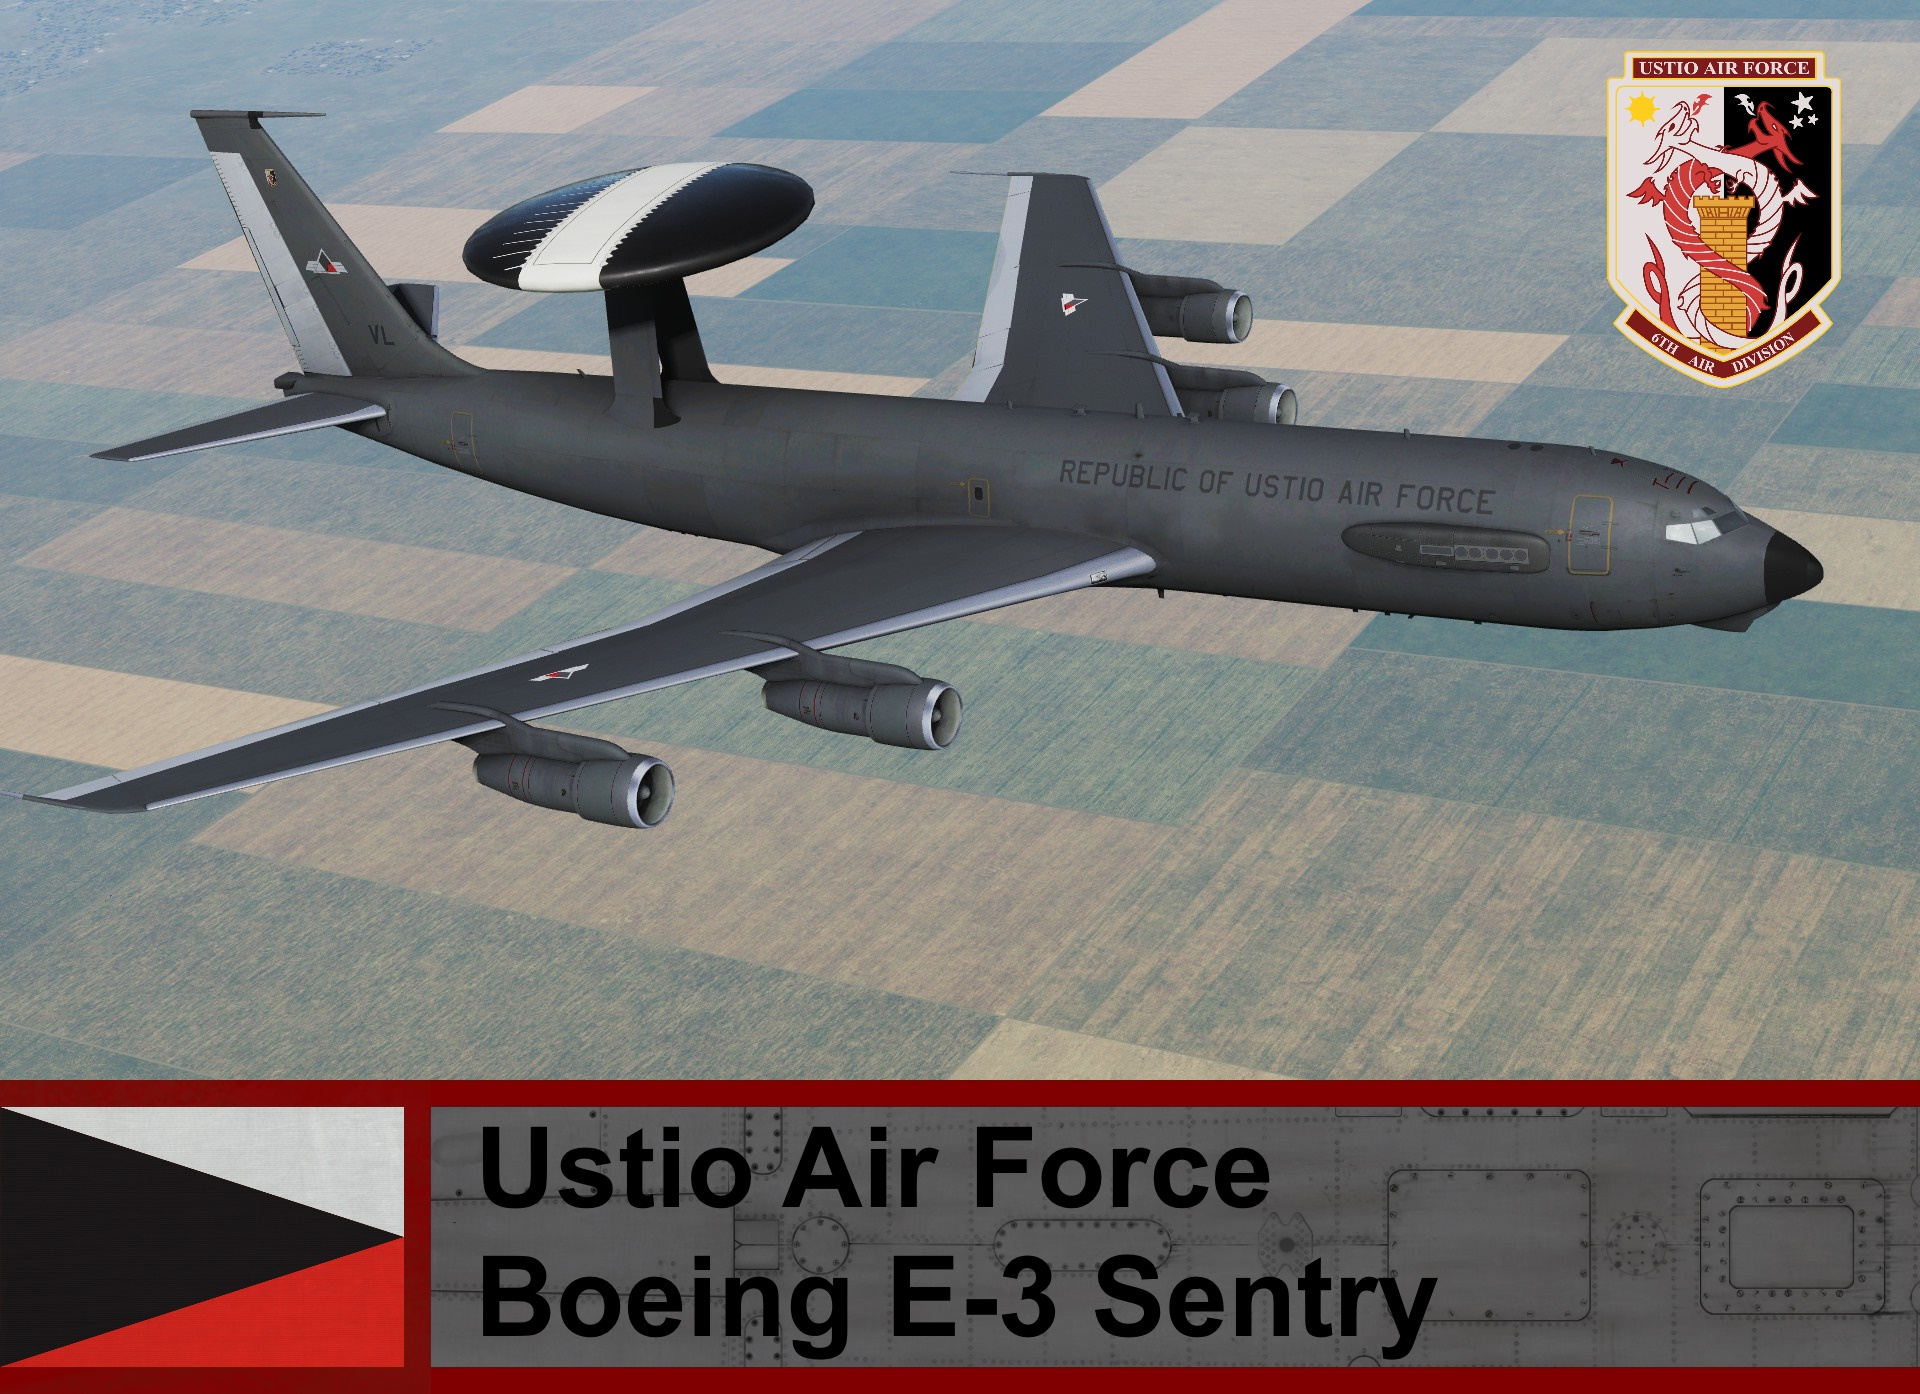 Ustio Air Force Boeing E-3 Sentry - Ace Combat Zero <<AWACS EAGLE EYE>>